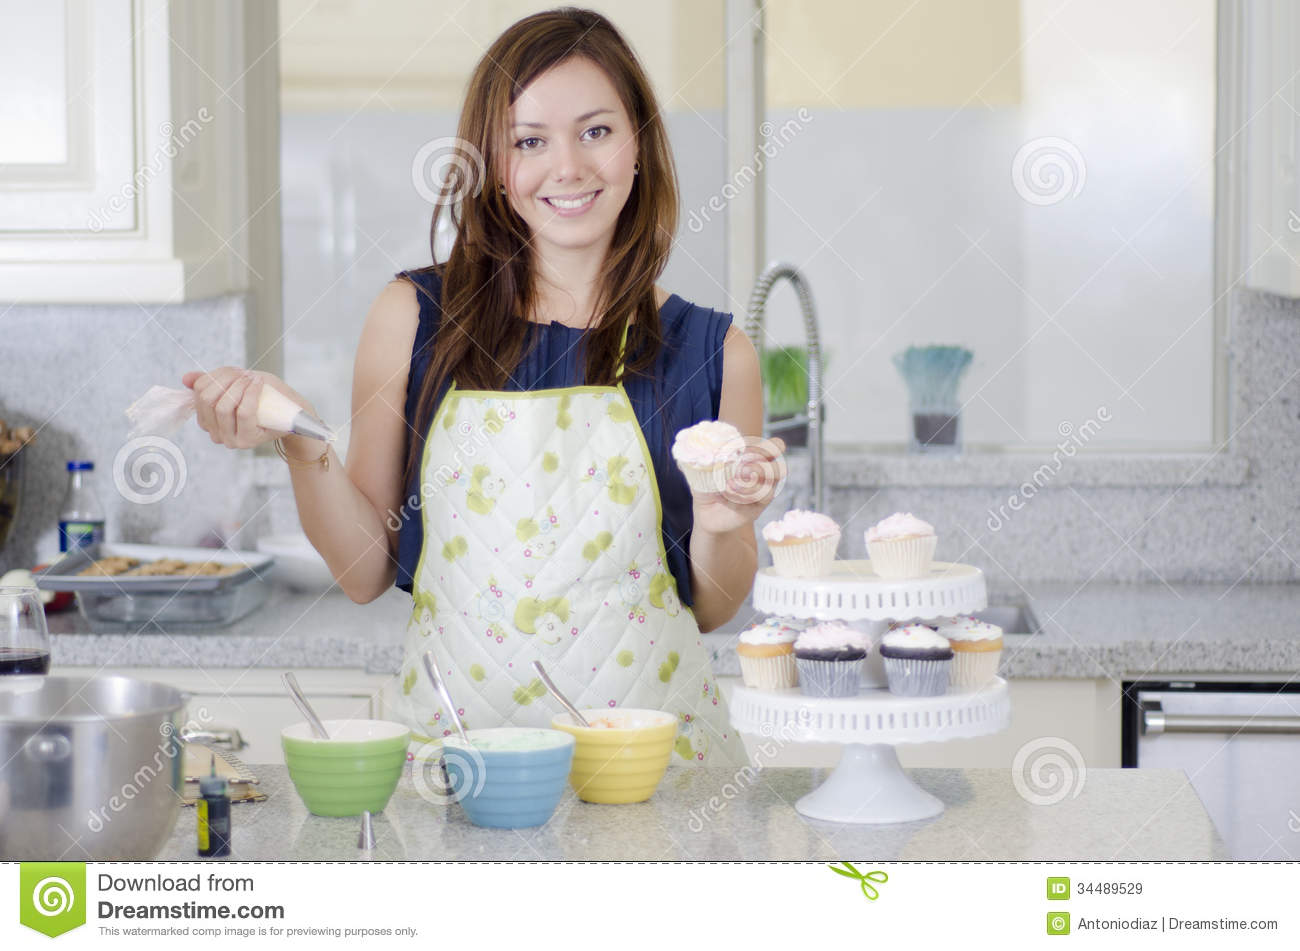 royalty free stock photo download beautiful woman making cupcakes - Woman Decorating Cupcakes